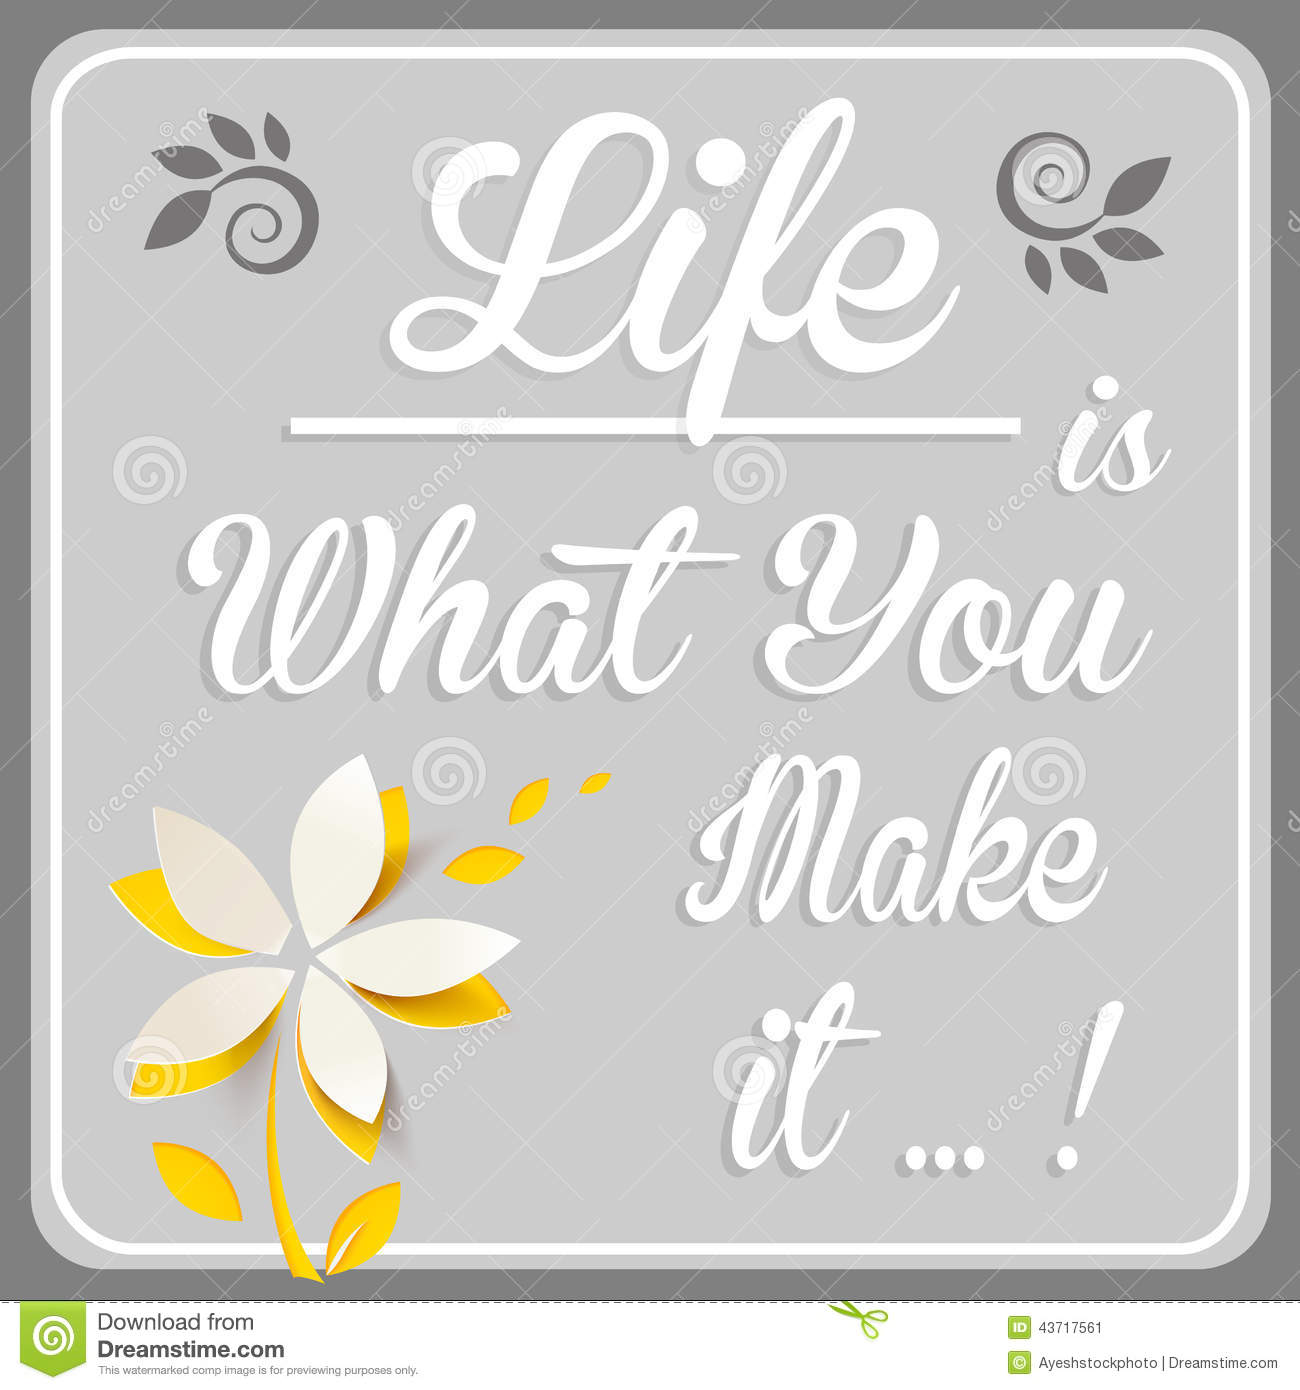 life is what you make it essay How would i go about writing an essay on character qualities that make you unique and your world views and since your own life is so familiar to you.